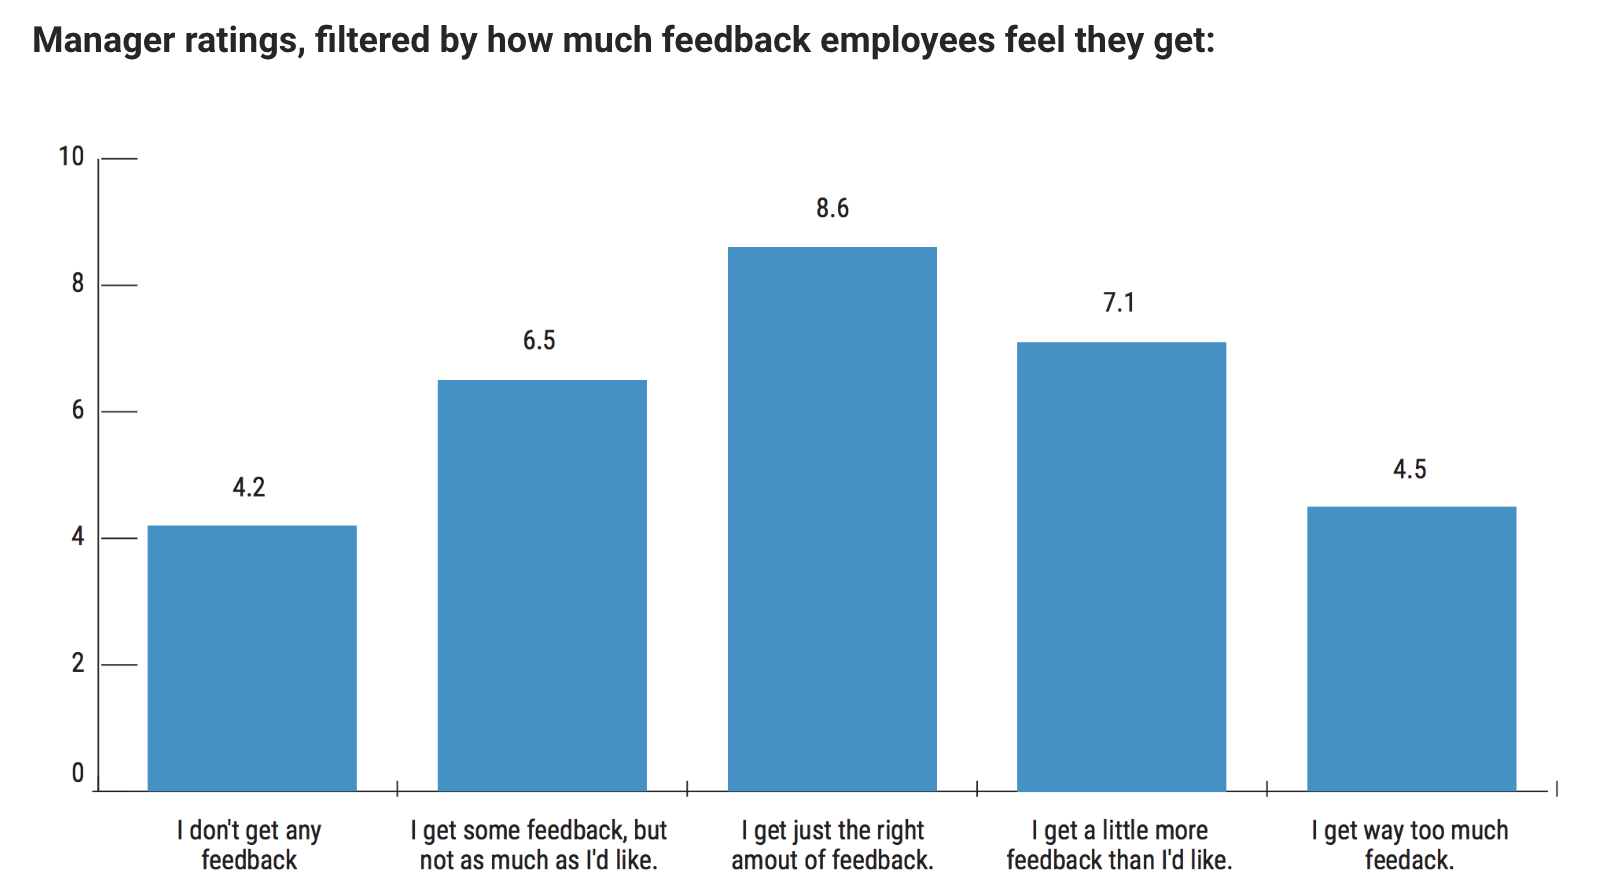 Chart showing manager ratings and employee feedback